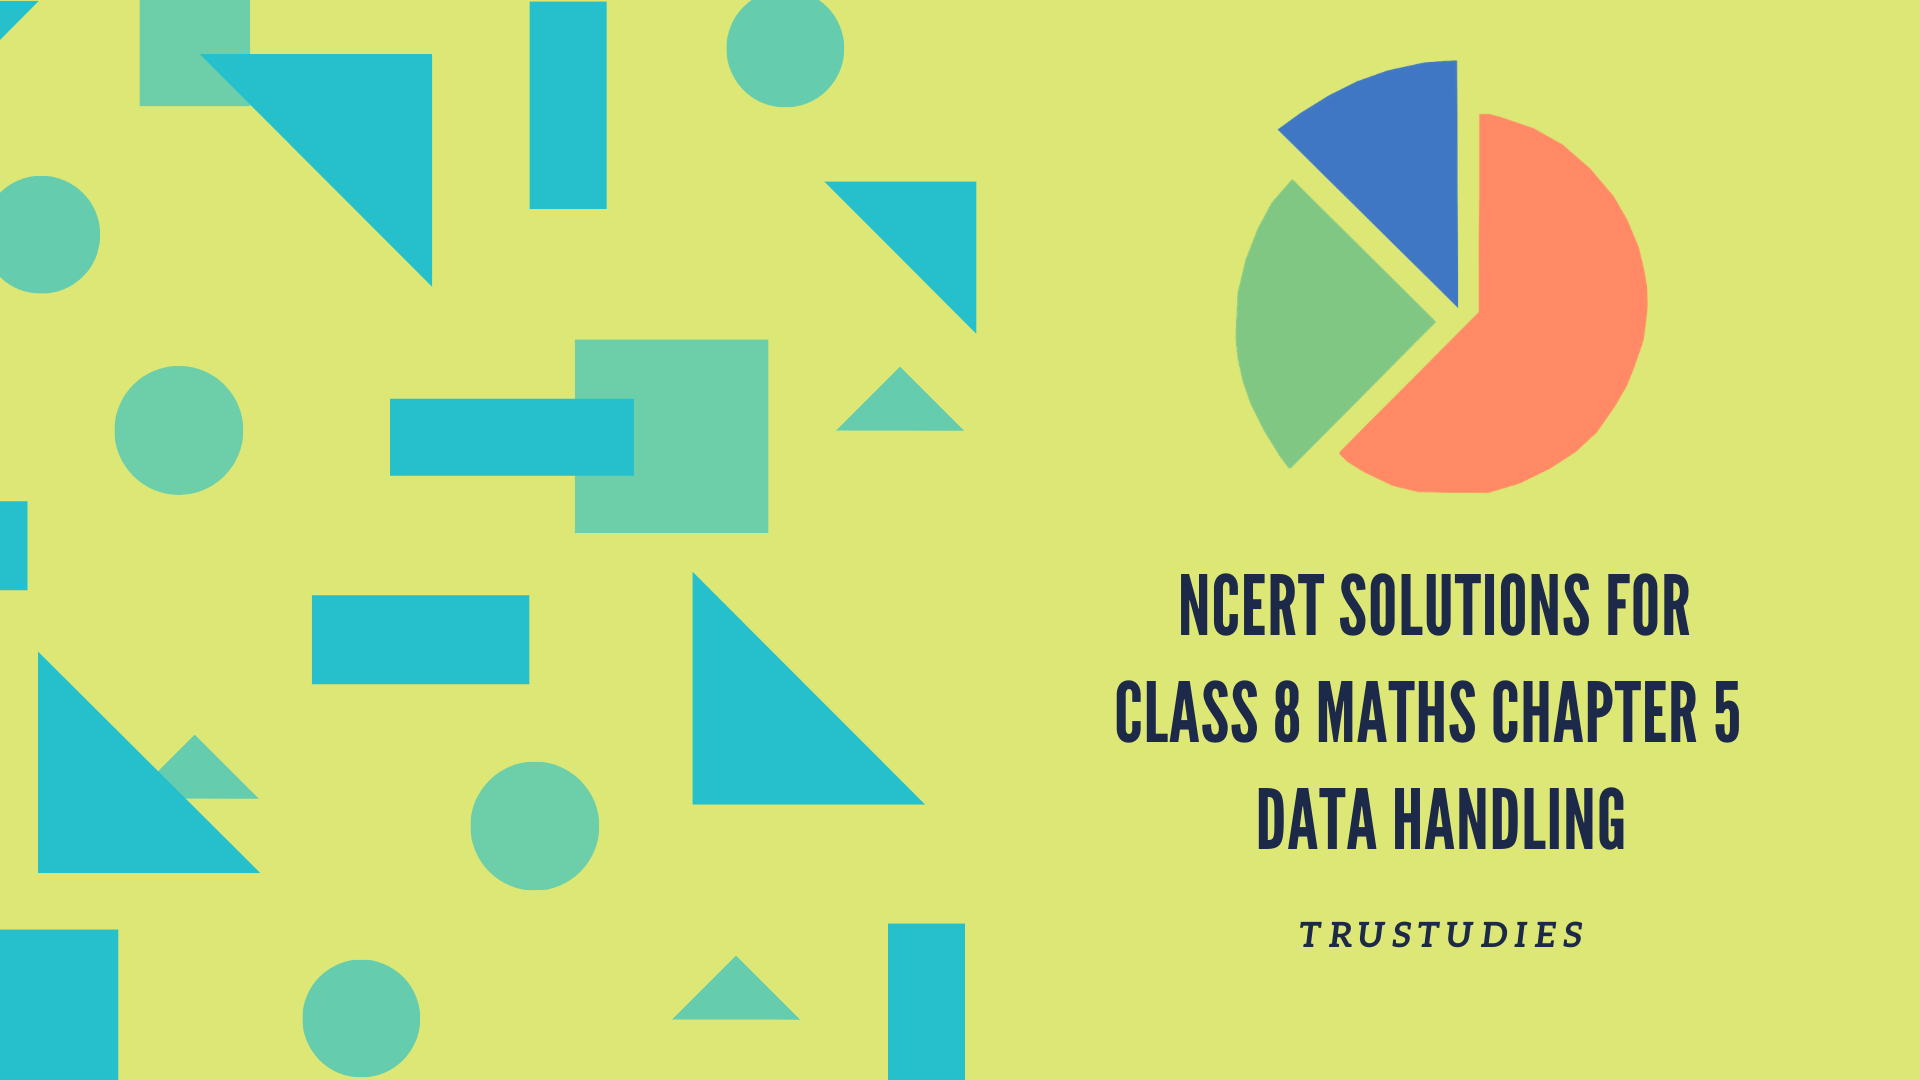 NCERT solutions for class 8 maths chapter 5 data handling banner image